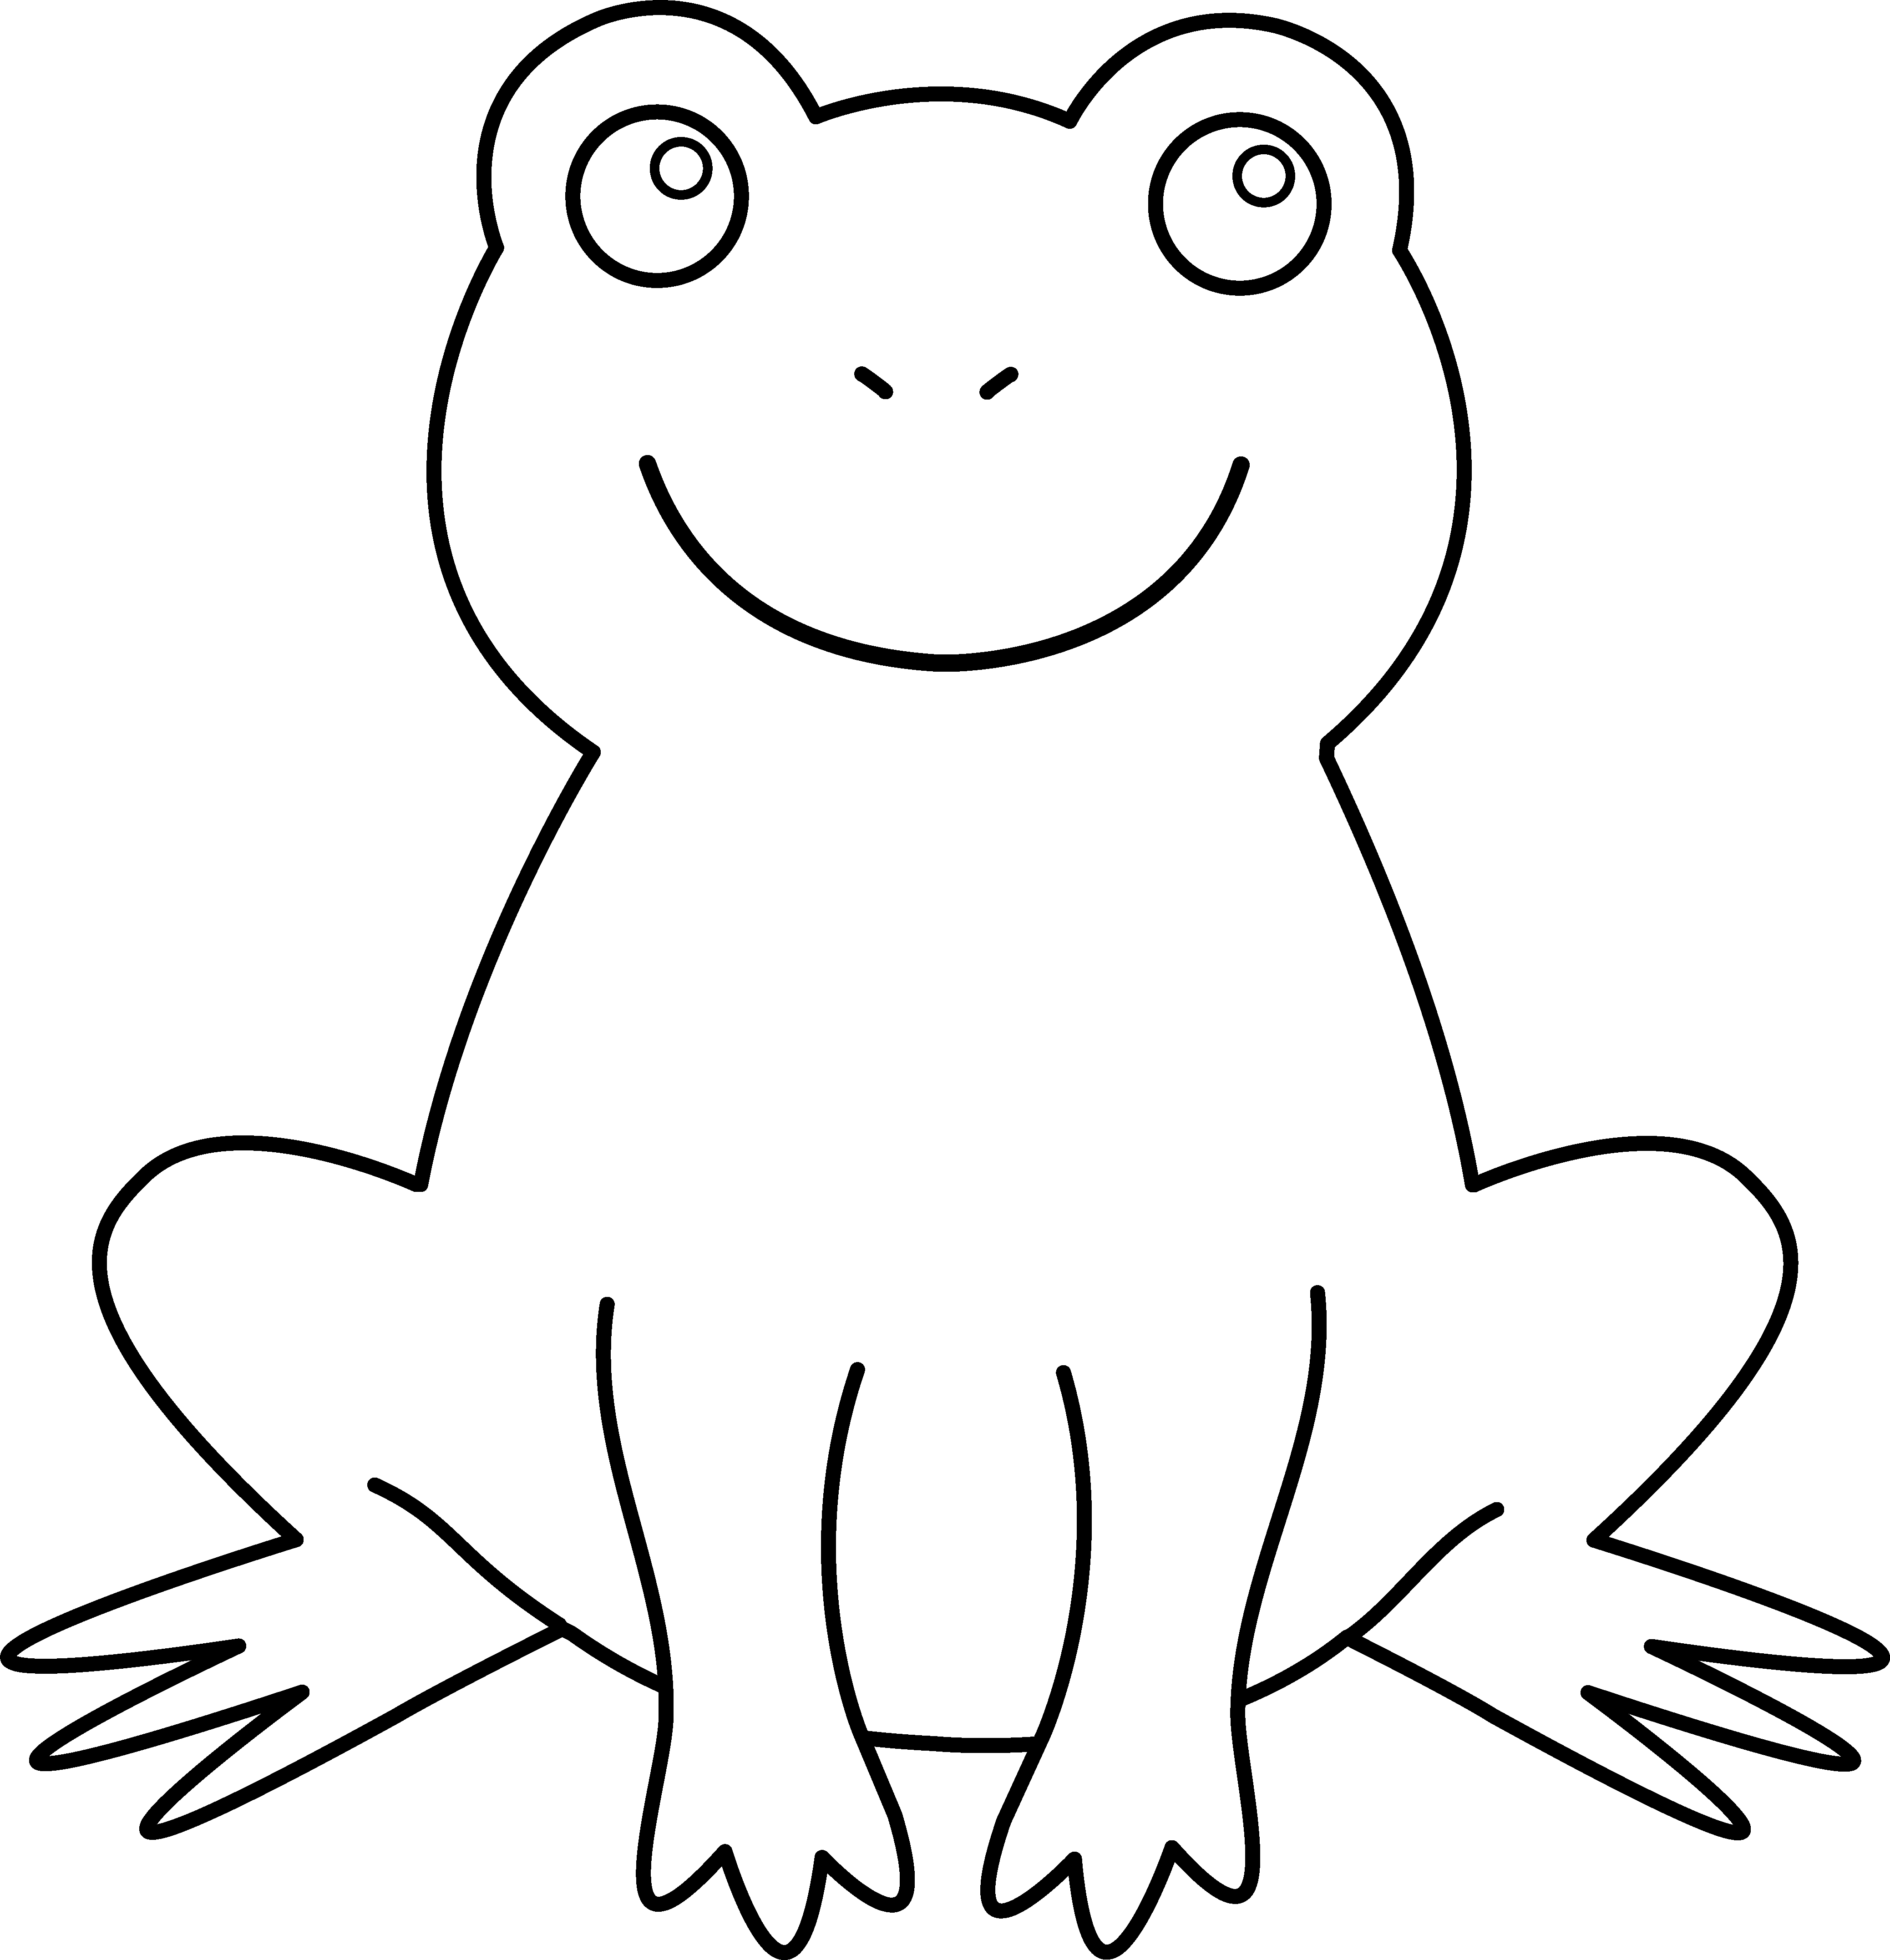 coloring frog outline images line drawing of frogs at getdrawings free download images coloring frog outline